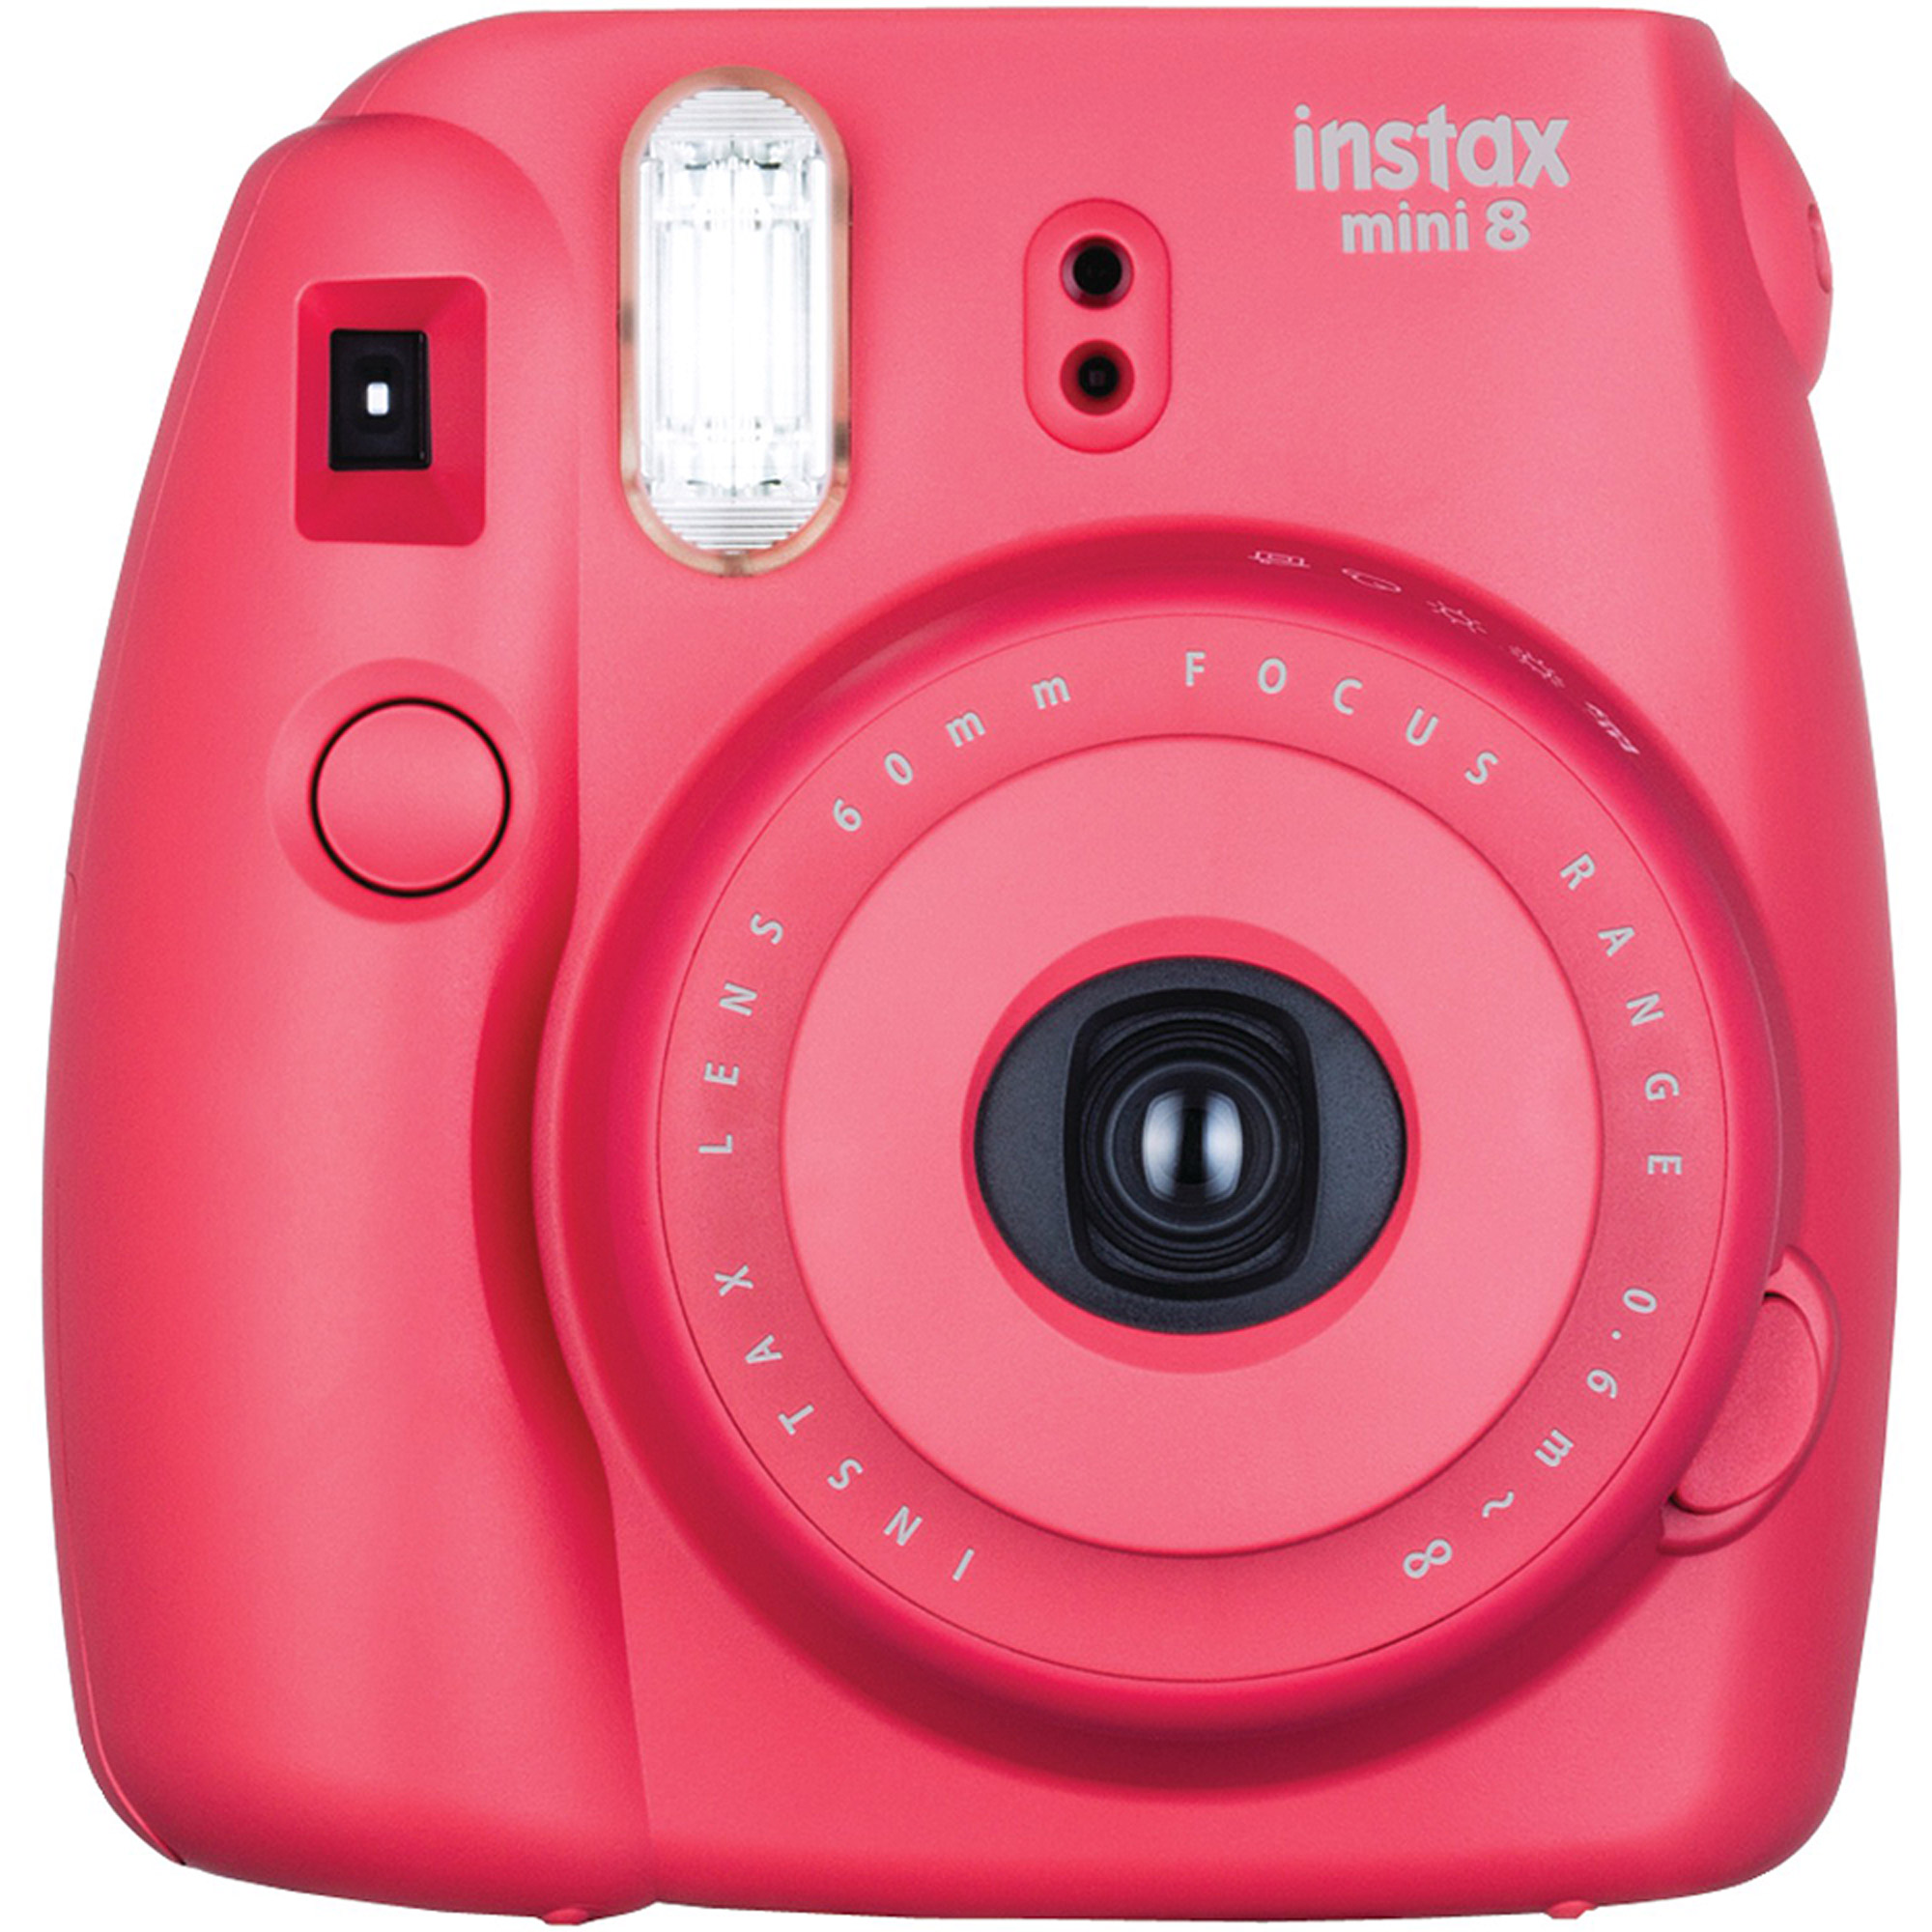 Camera Cameras For Sale At Walmart fujifilm instax mini 8 instant camera raspberry walmart com